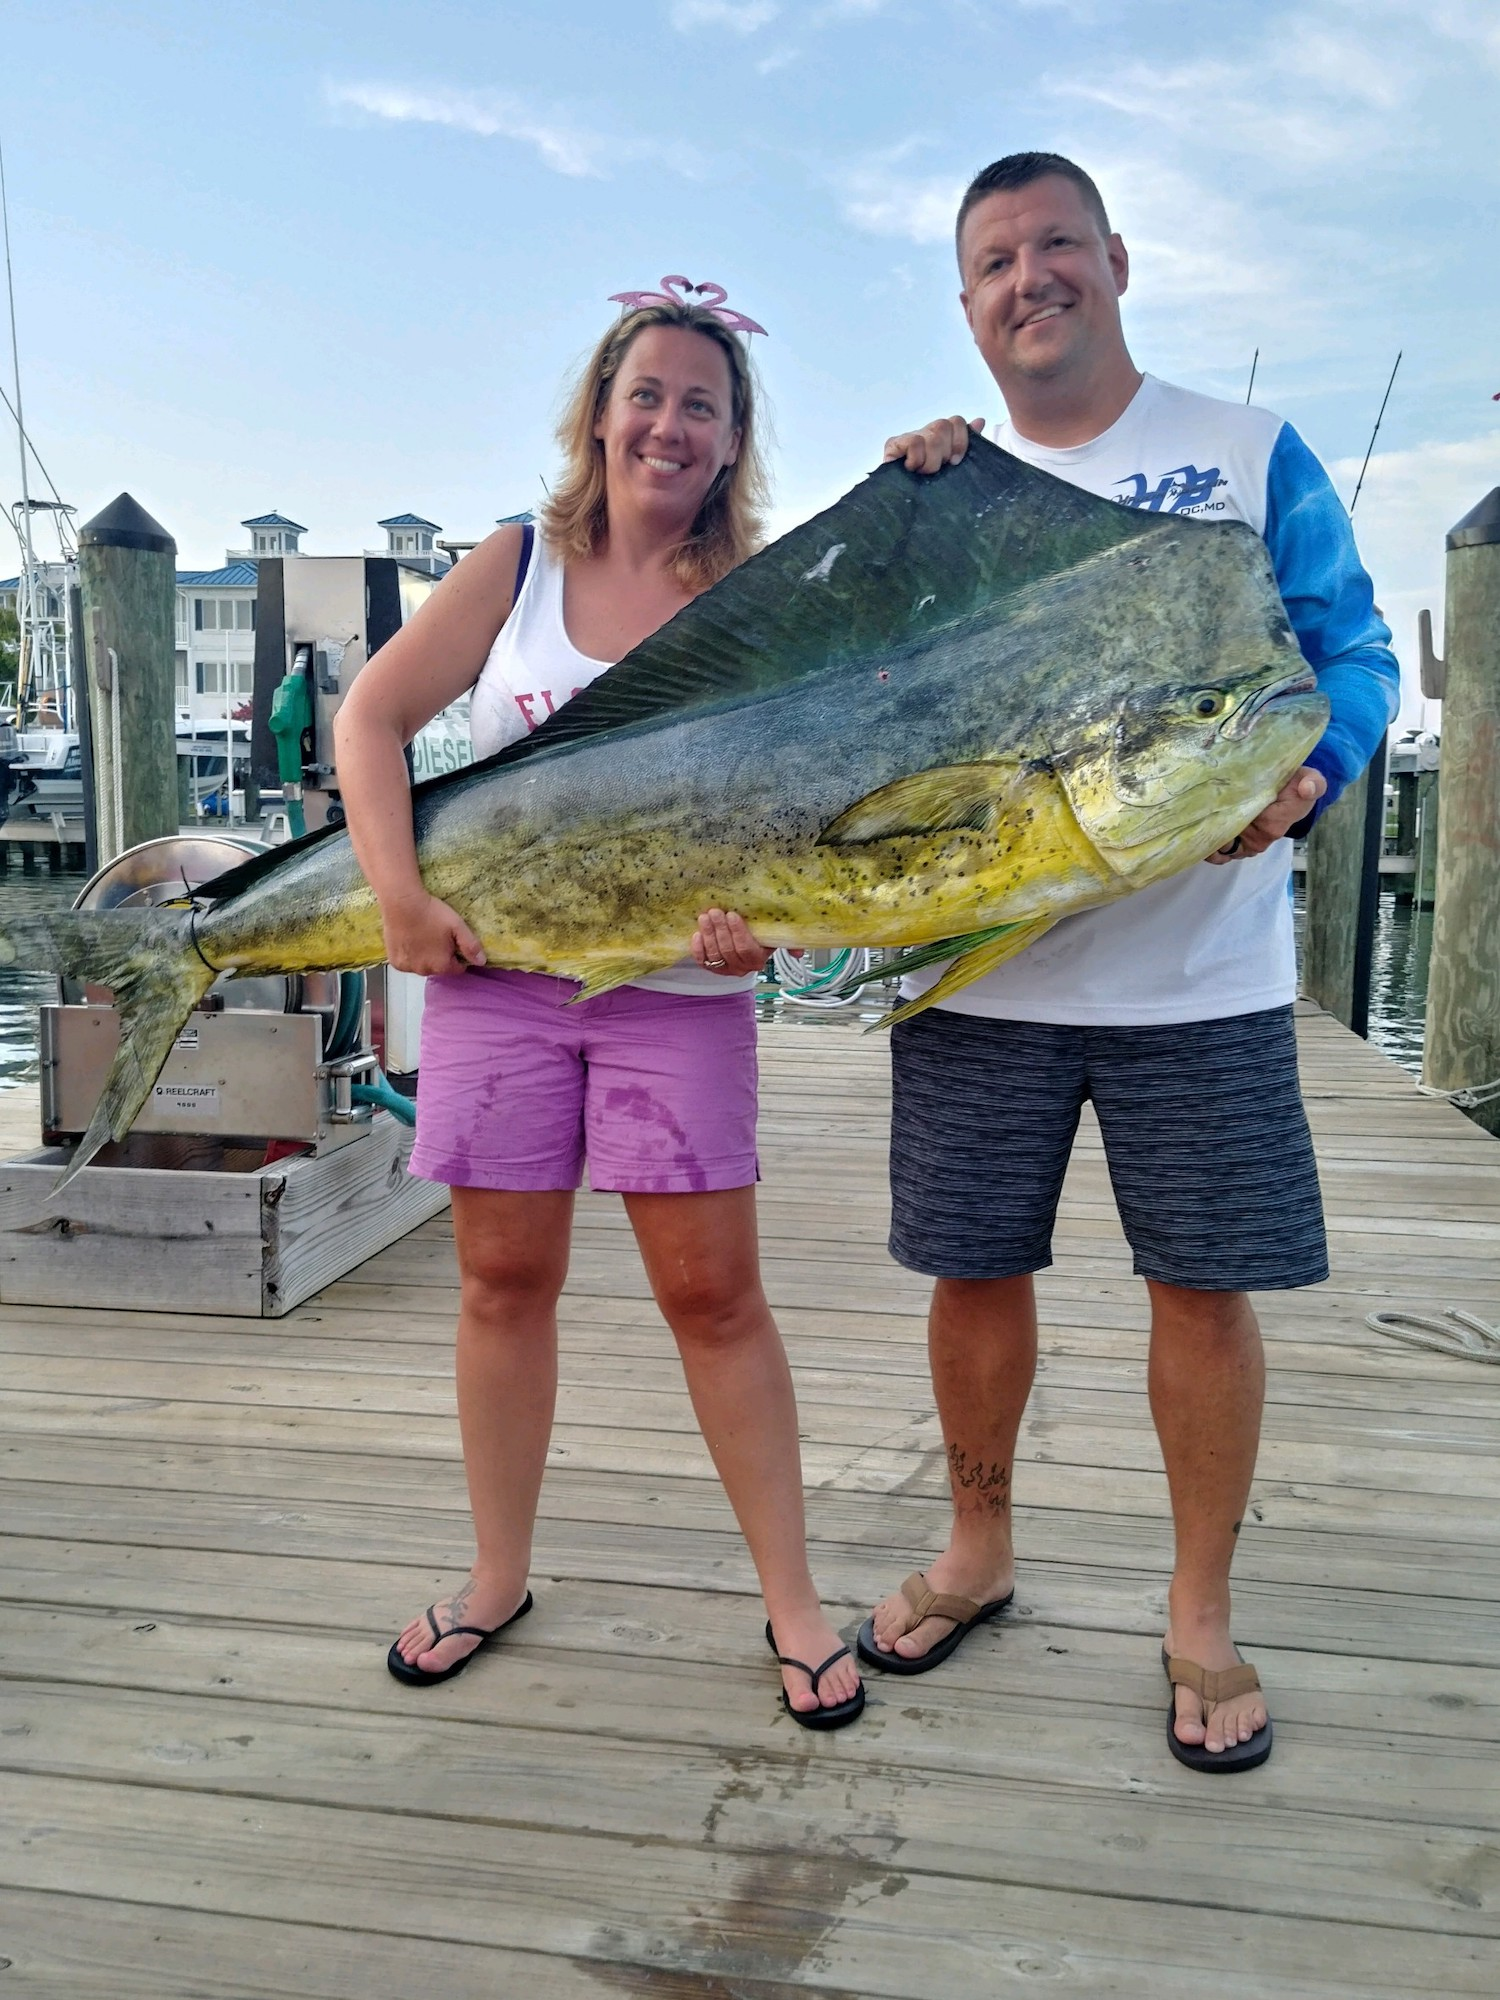 Day 2 at The 2019 Poor Girl's Open Sees NEW MD State Record Mahi